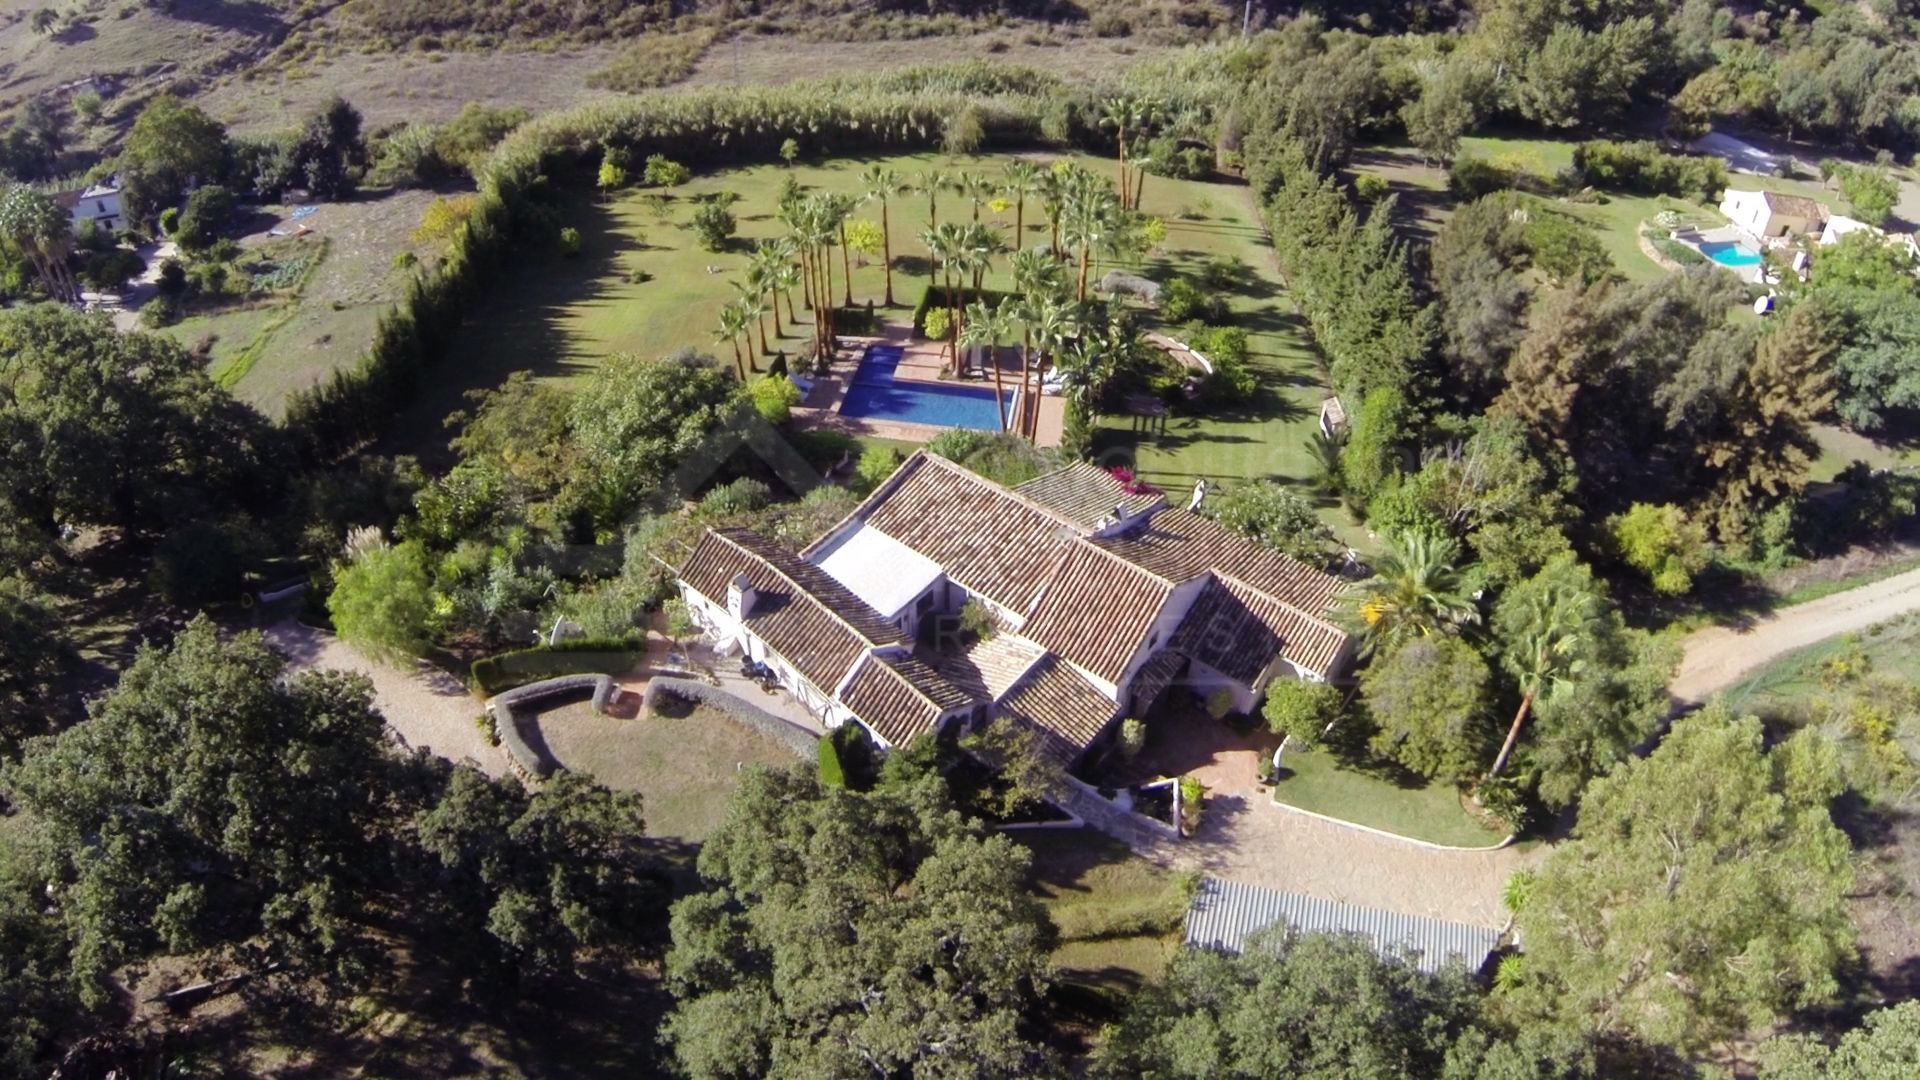 Renovated 4-bedroom country house for sale in La Acedia, Casares